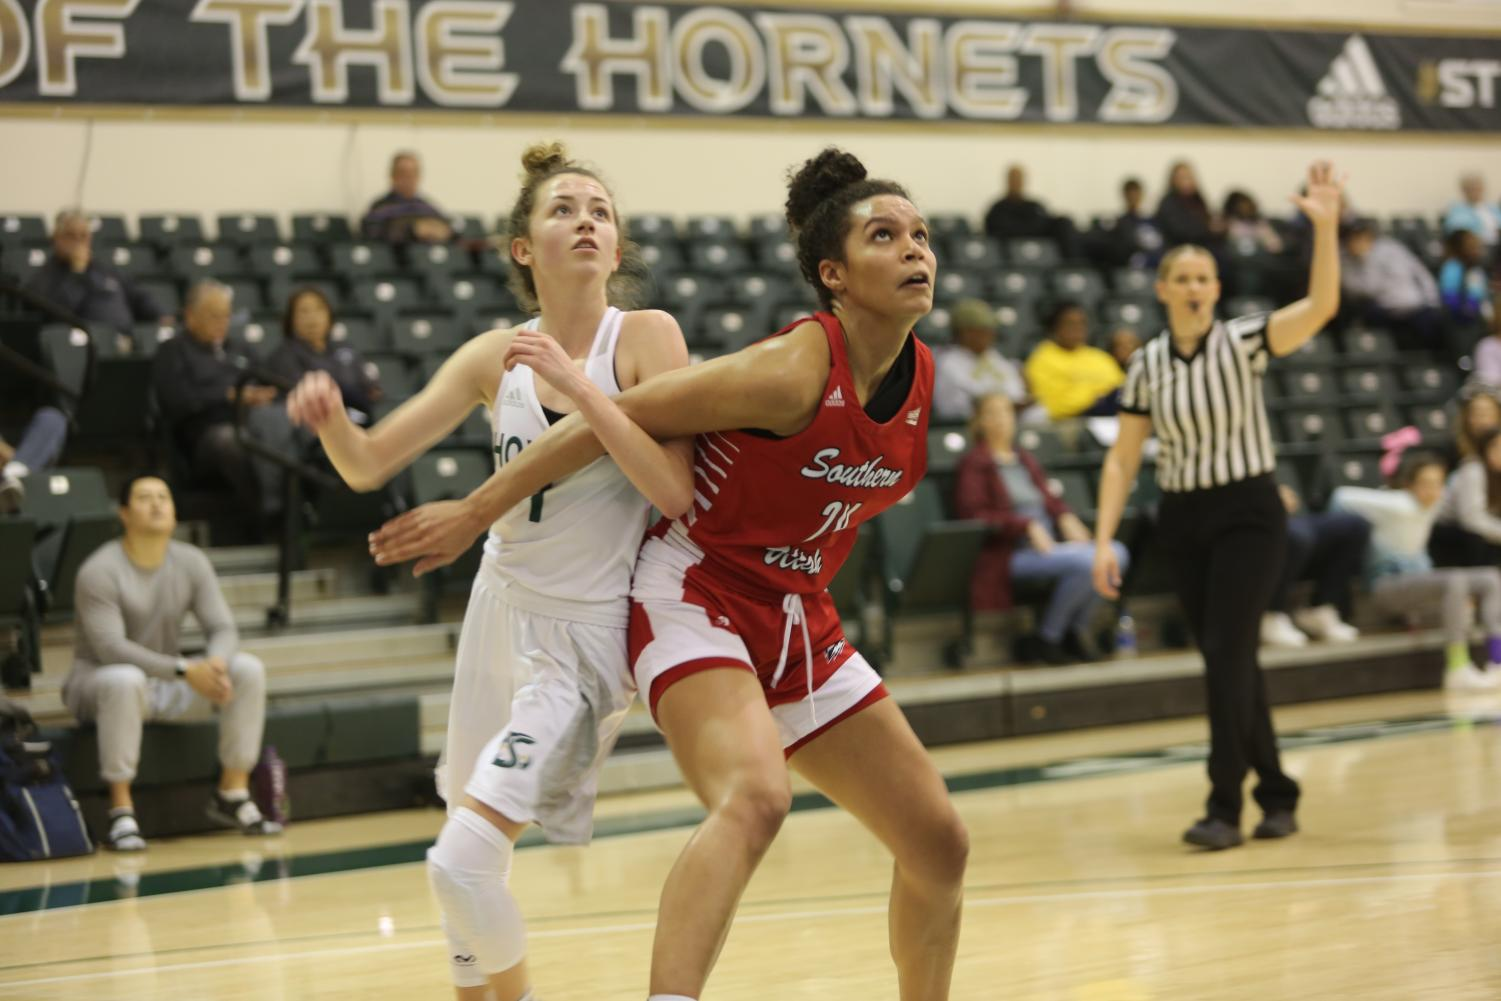 Sac State sophomore point guard Milee Enger attempts to box out Southern Utah junior forward Jessica Chatman for a rebound against the Thunderbirds on Saturday, Jan. 18 at the Nest. Enger had three rebounds, two points and two assists in the win.